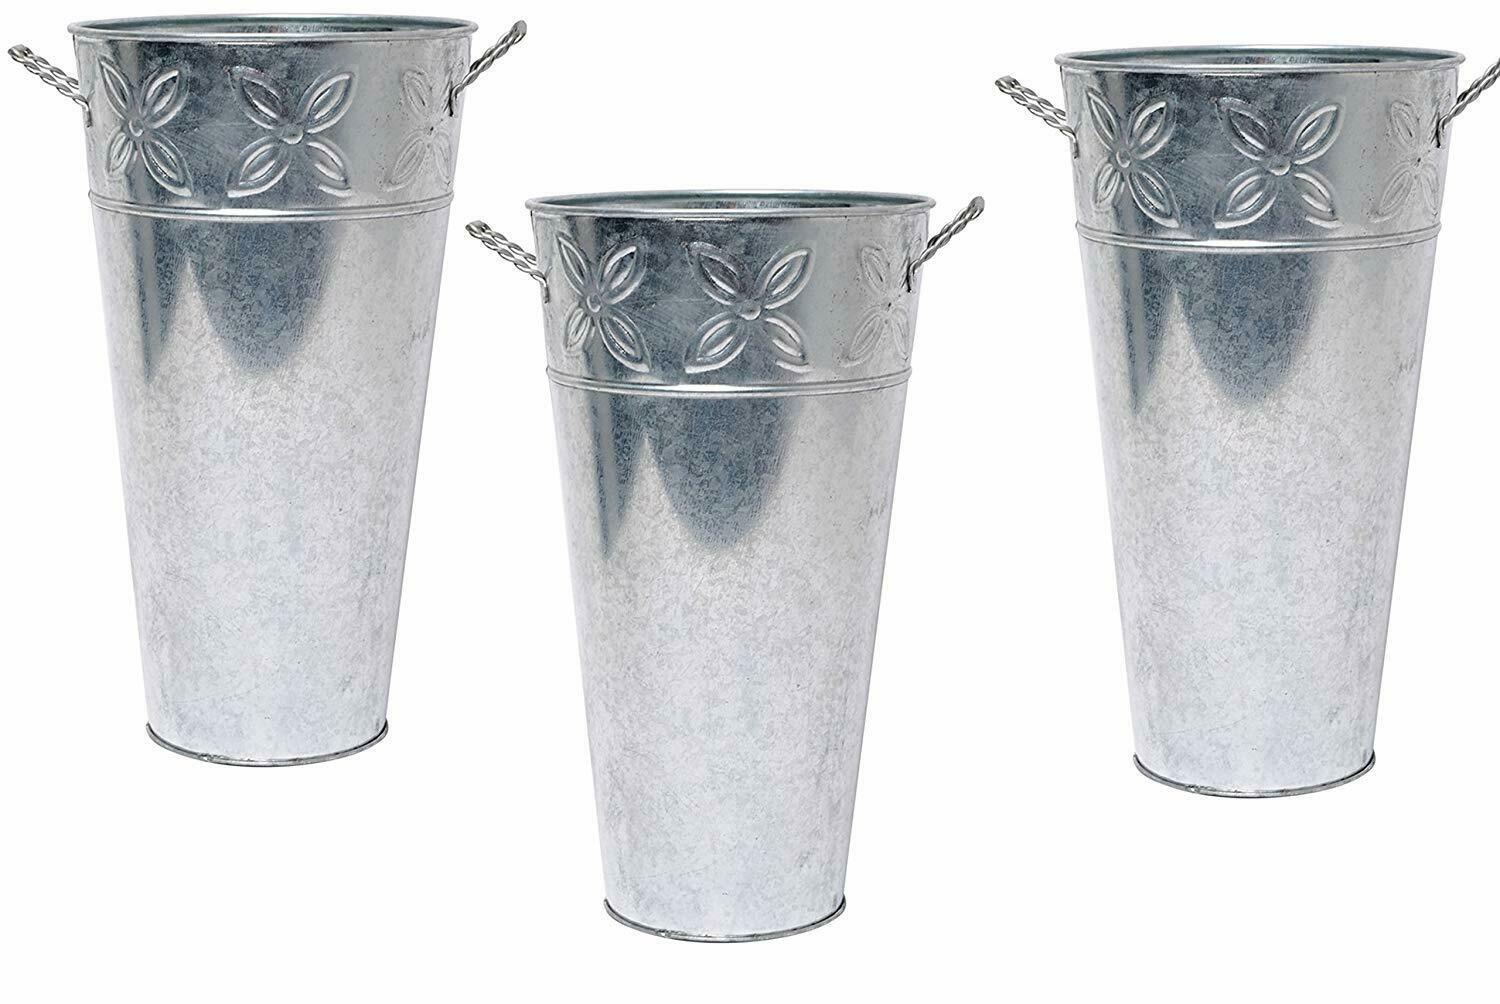 Primary image for Nice! Farmhouse Style Set of 3 Galvanized Metal Bucket Flower Vases & Decor